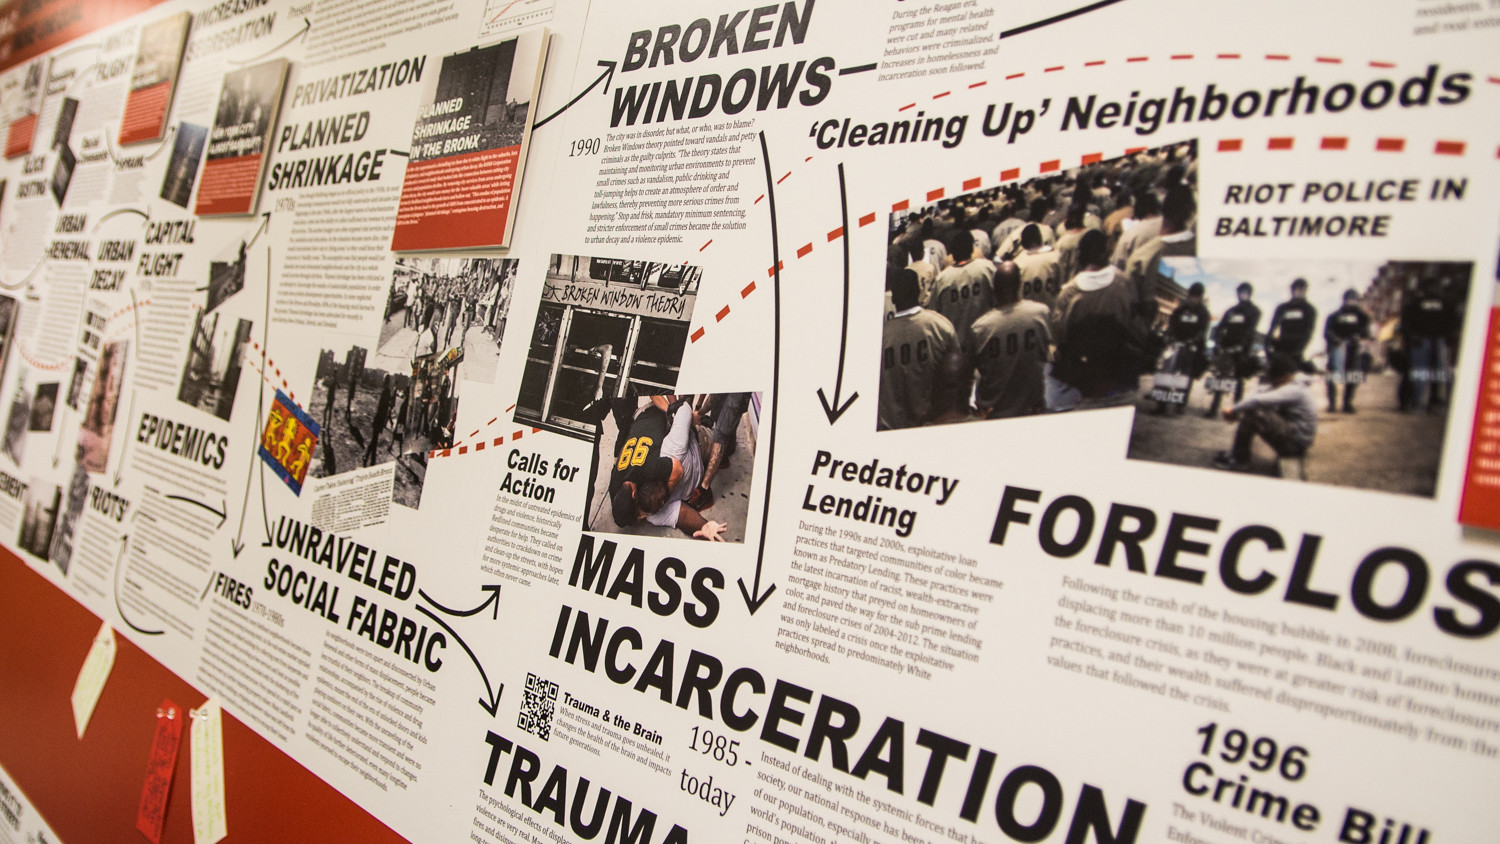 Redlining has been described by clinical psychologist Mindy Fulilove as the 'Rosetta Stone' for understanding current societal imbalance. The exhibit 'Undesign the Redline' on Arthur Avenue attempts to make this connection clear by linking the Depression-era practice with modern social justice movements, including those against mass incarceration.